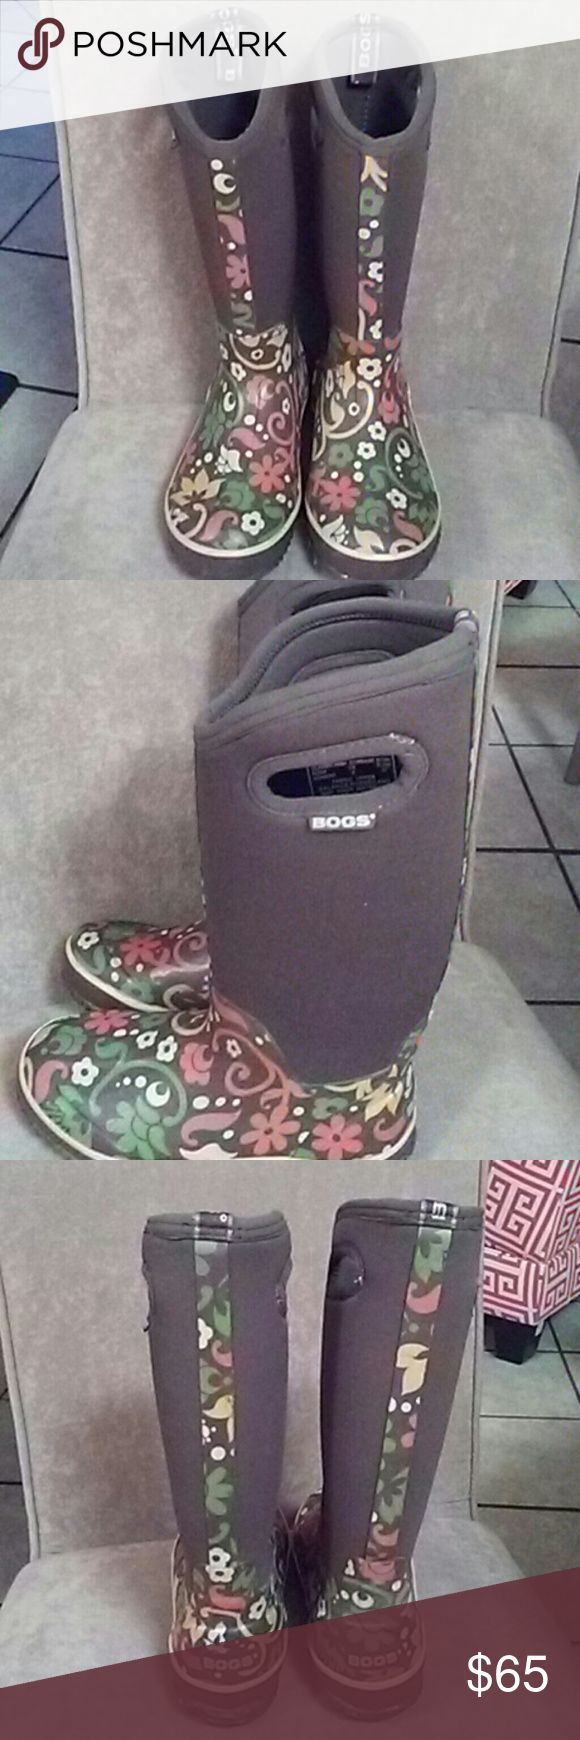 Bogs thermal  weather boots rain and snow Bogs thermal weather boots rain and snow.... Size 6 . like new brown with floral print. Bogs Shoes Winter & Rain Boots